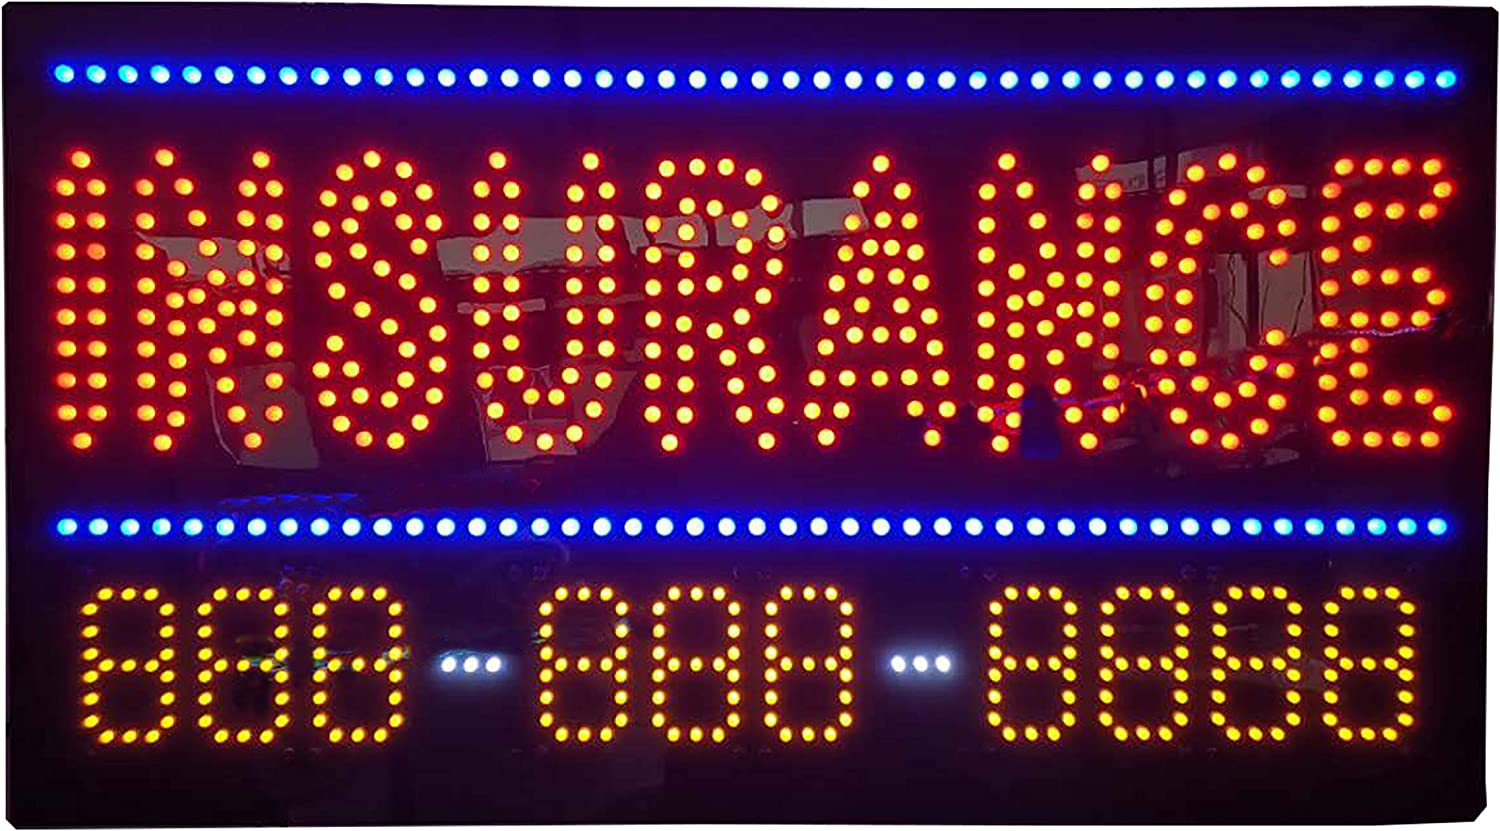 amazon com led insurance agency open light sign super bright electric advertising display board for auto farmers health medicare life home insurance agency business shop store window bedroom 31 x 17 inches home led insurance agency open light sign super bright electric advertising display board for auto farmers health medicare life home insurance agency